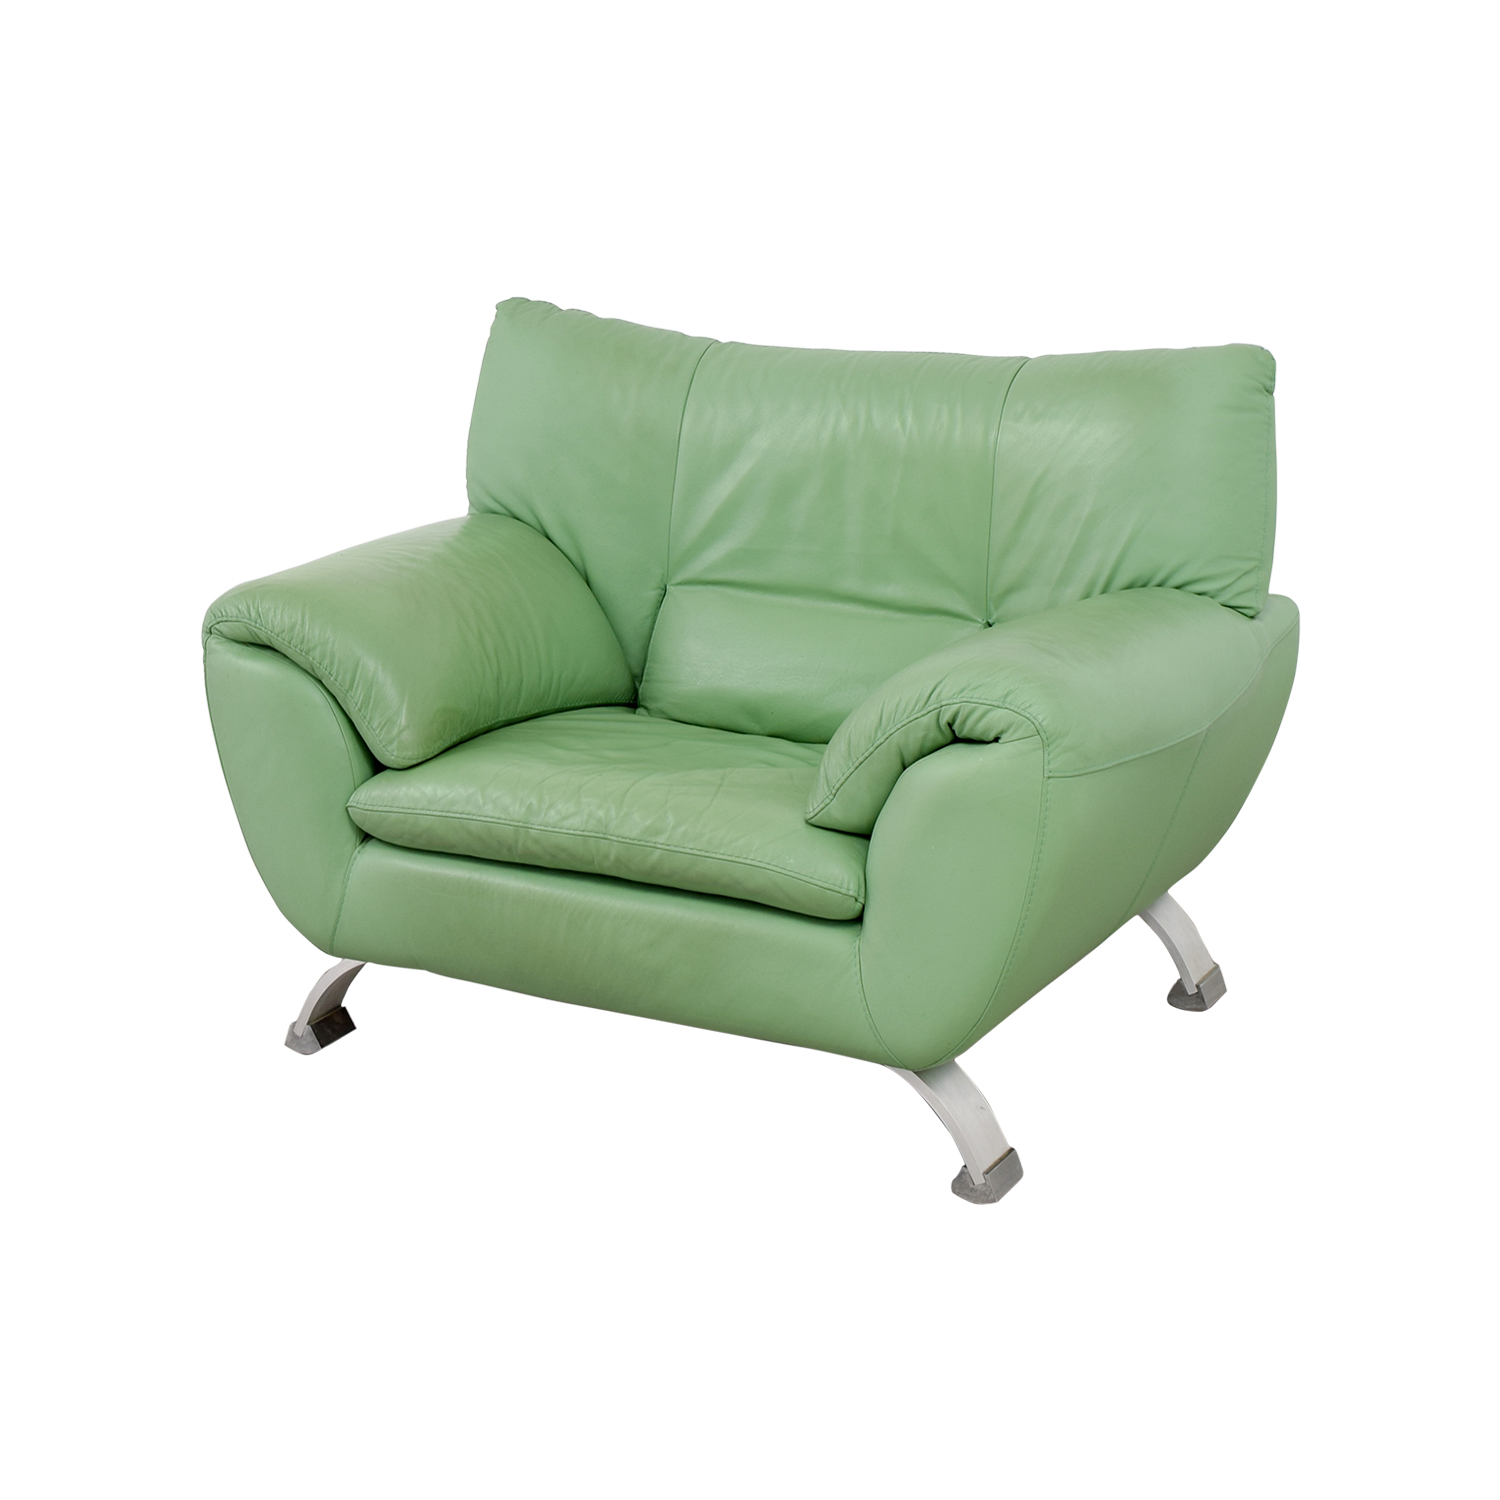 90 off nicoletti nicoletti green accent chair chairs for Furniture 90 off